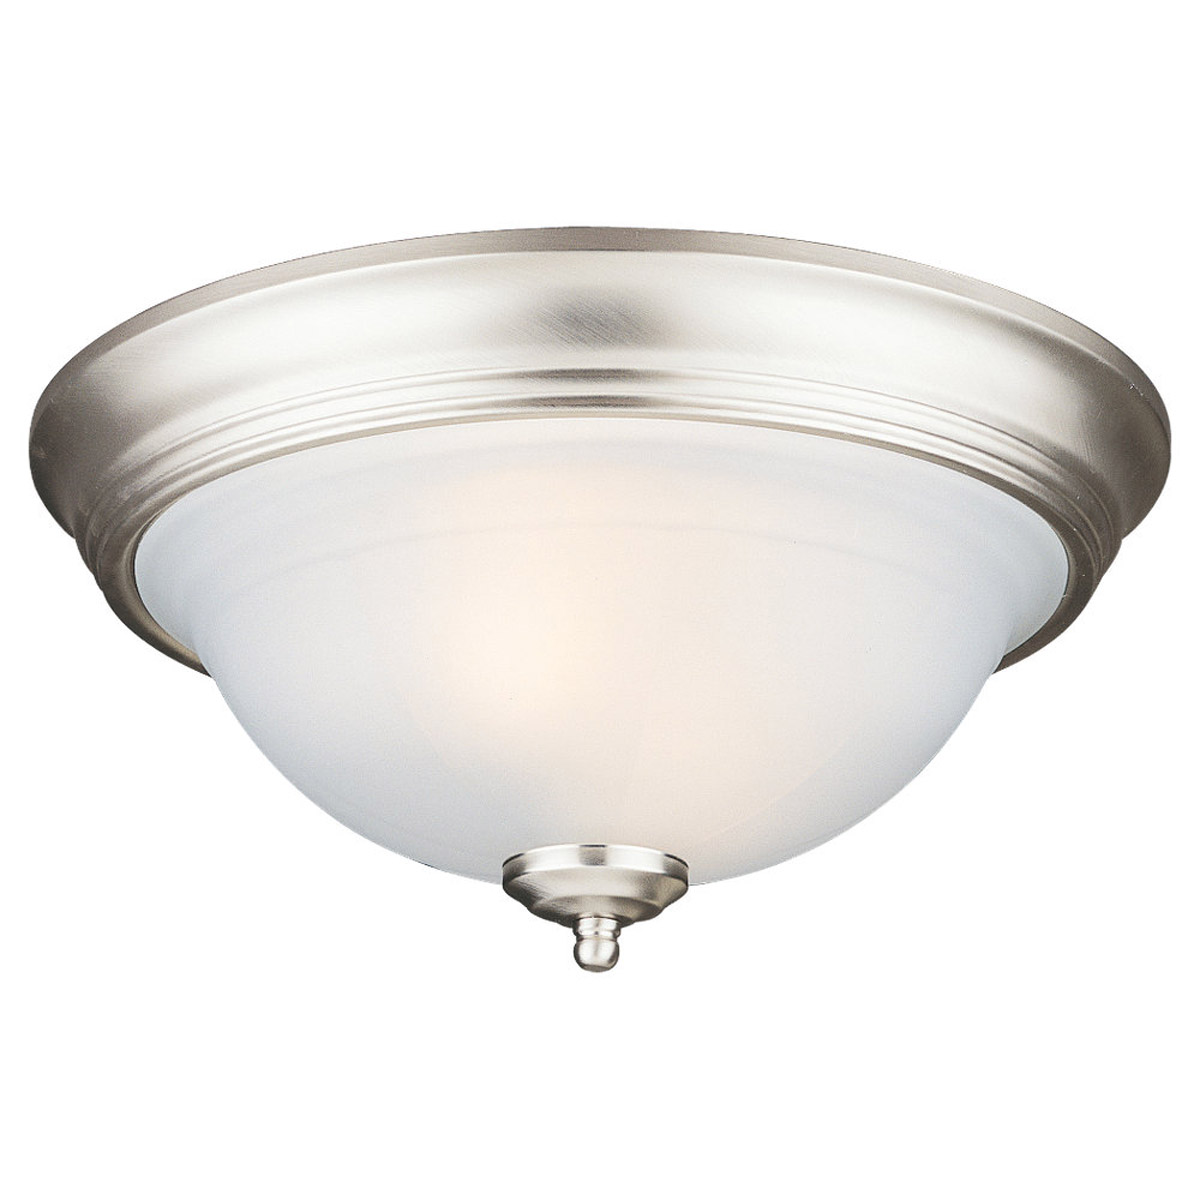 Sea Gull Lighting Canterbury 2 Light Flush Mount in Brushed Nickel 77050-962 photo